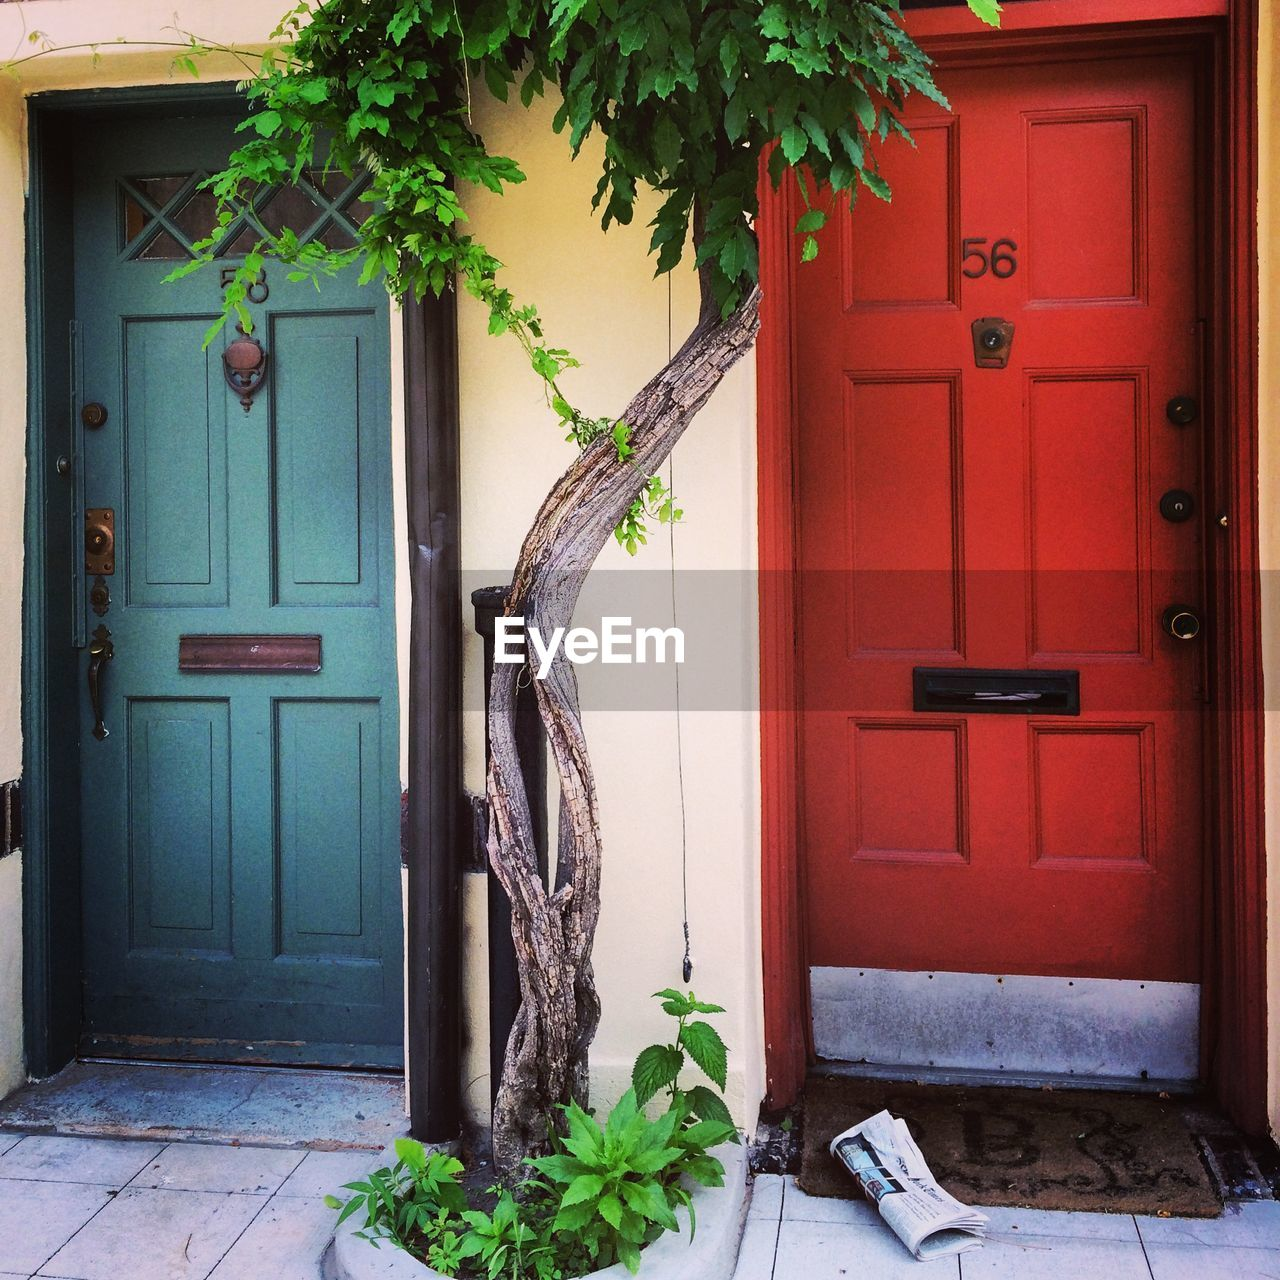 door, plant, potted plant, leaf, entrance, closed, house, growth, architecture, day, built structure, doorway, green color, no people, building exterior, wood - material, window, outdoors, ivy, open door, entry, nature, tree